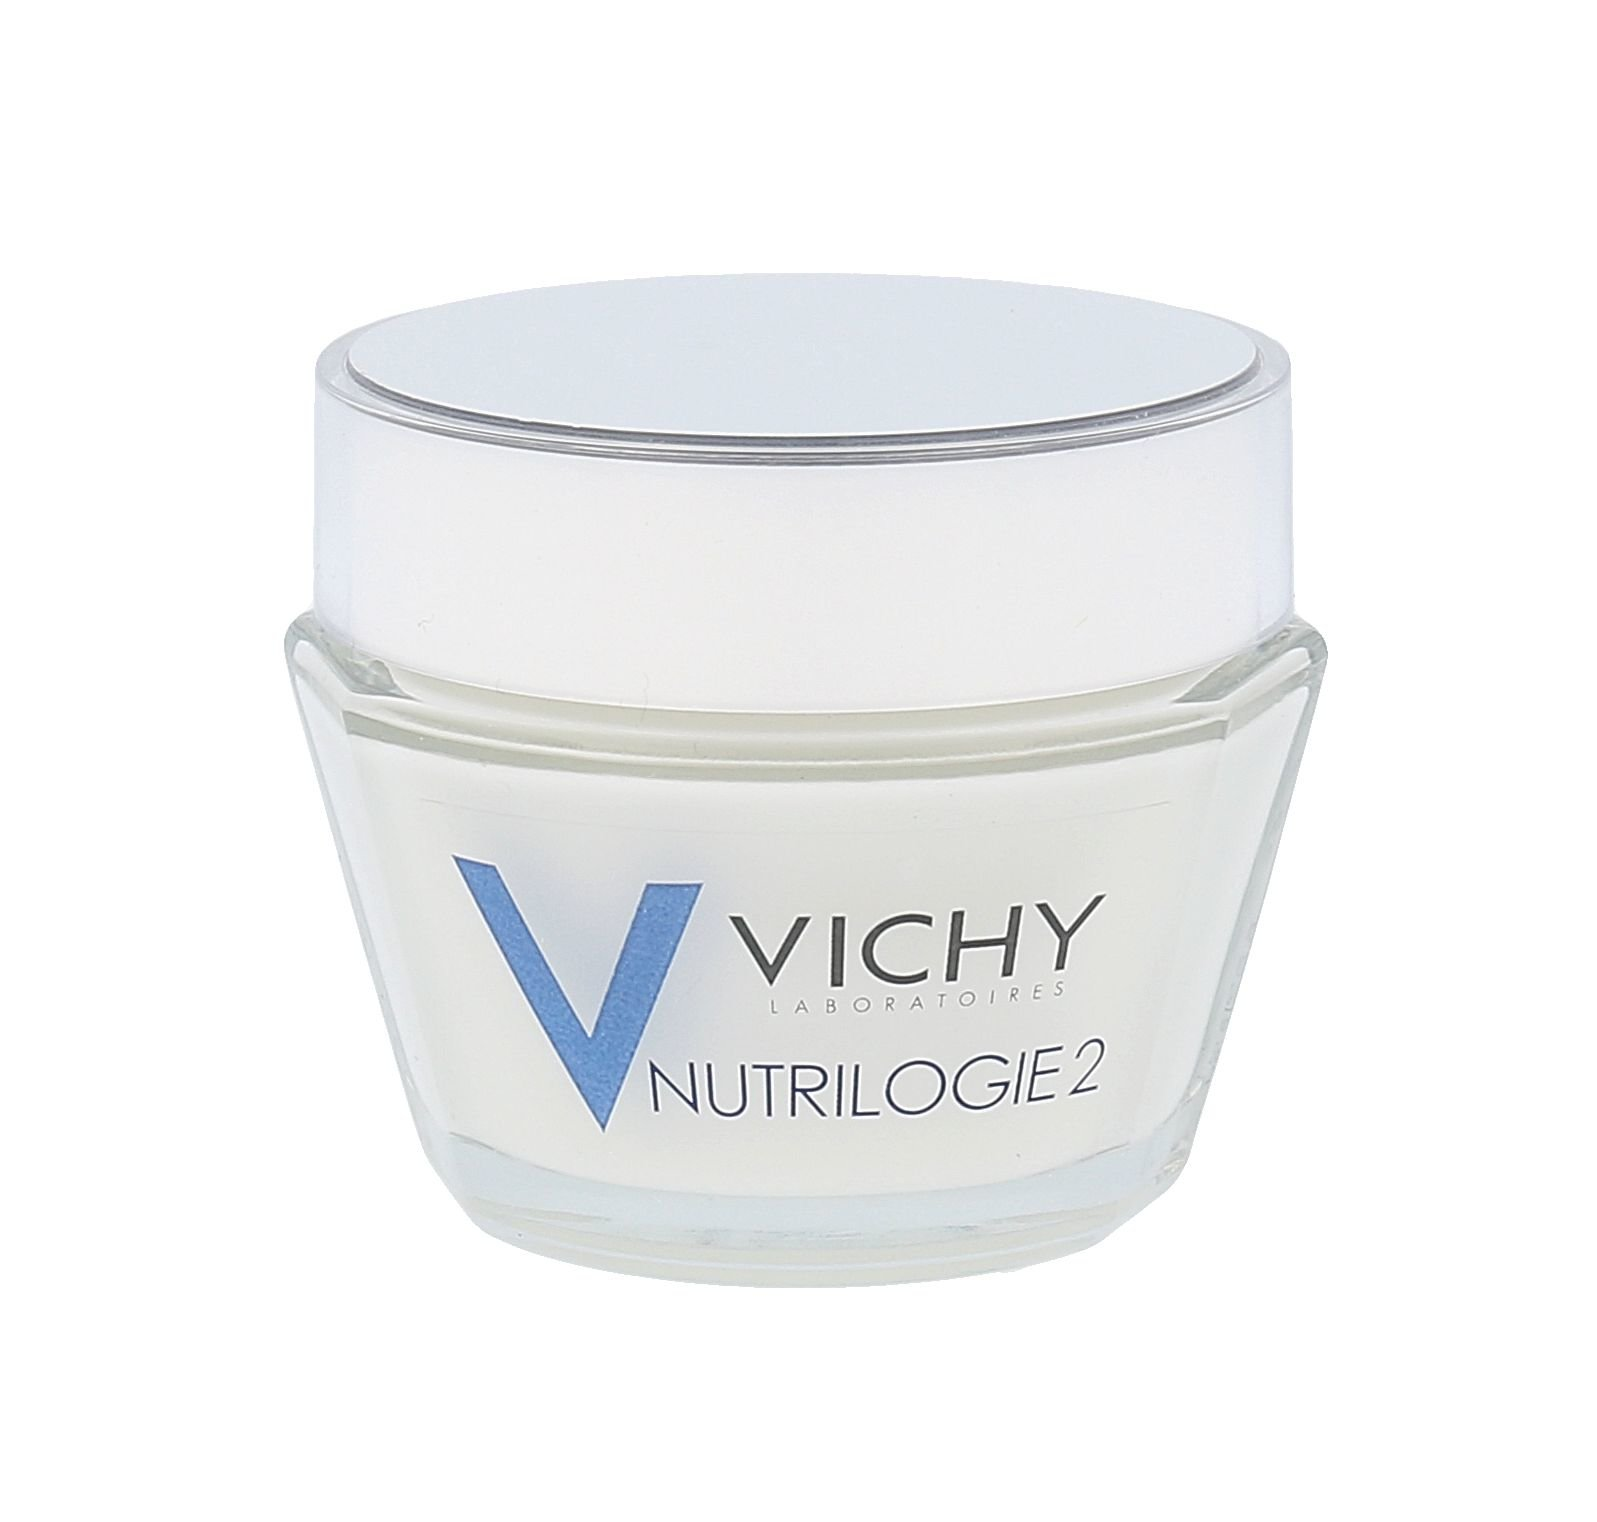 Vichy Nutrilogie 2 Cosmetic 50ml